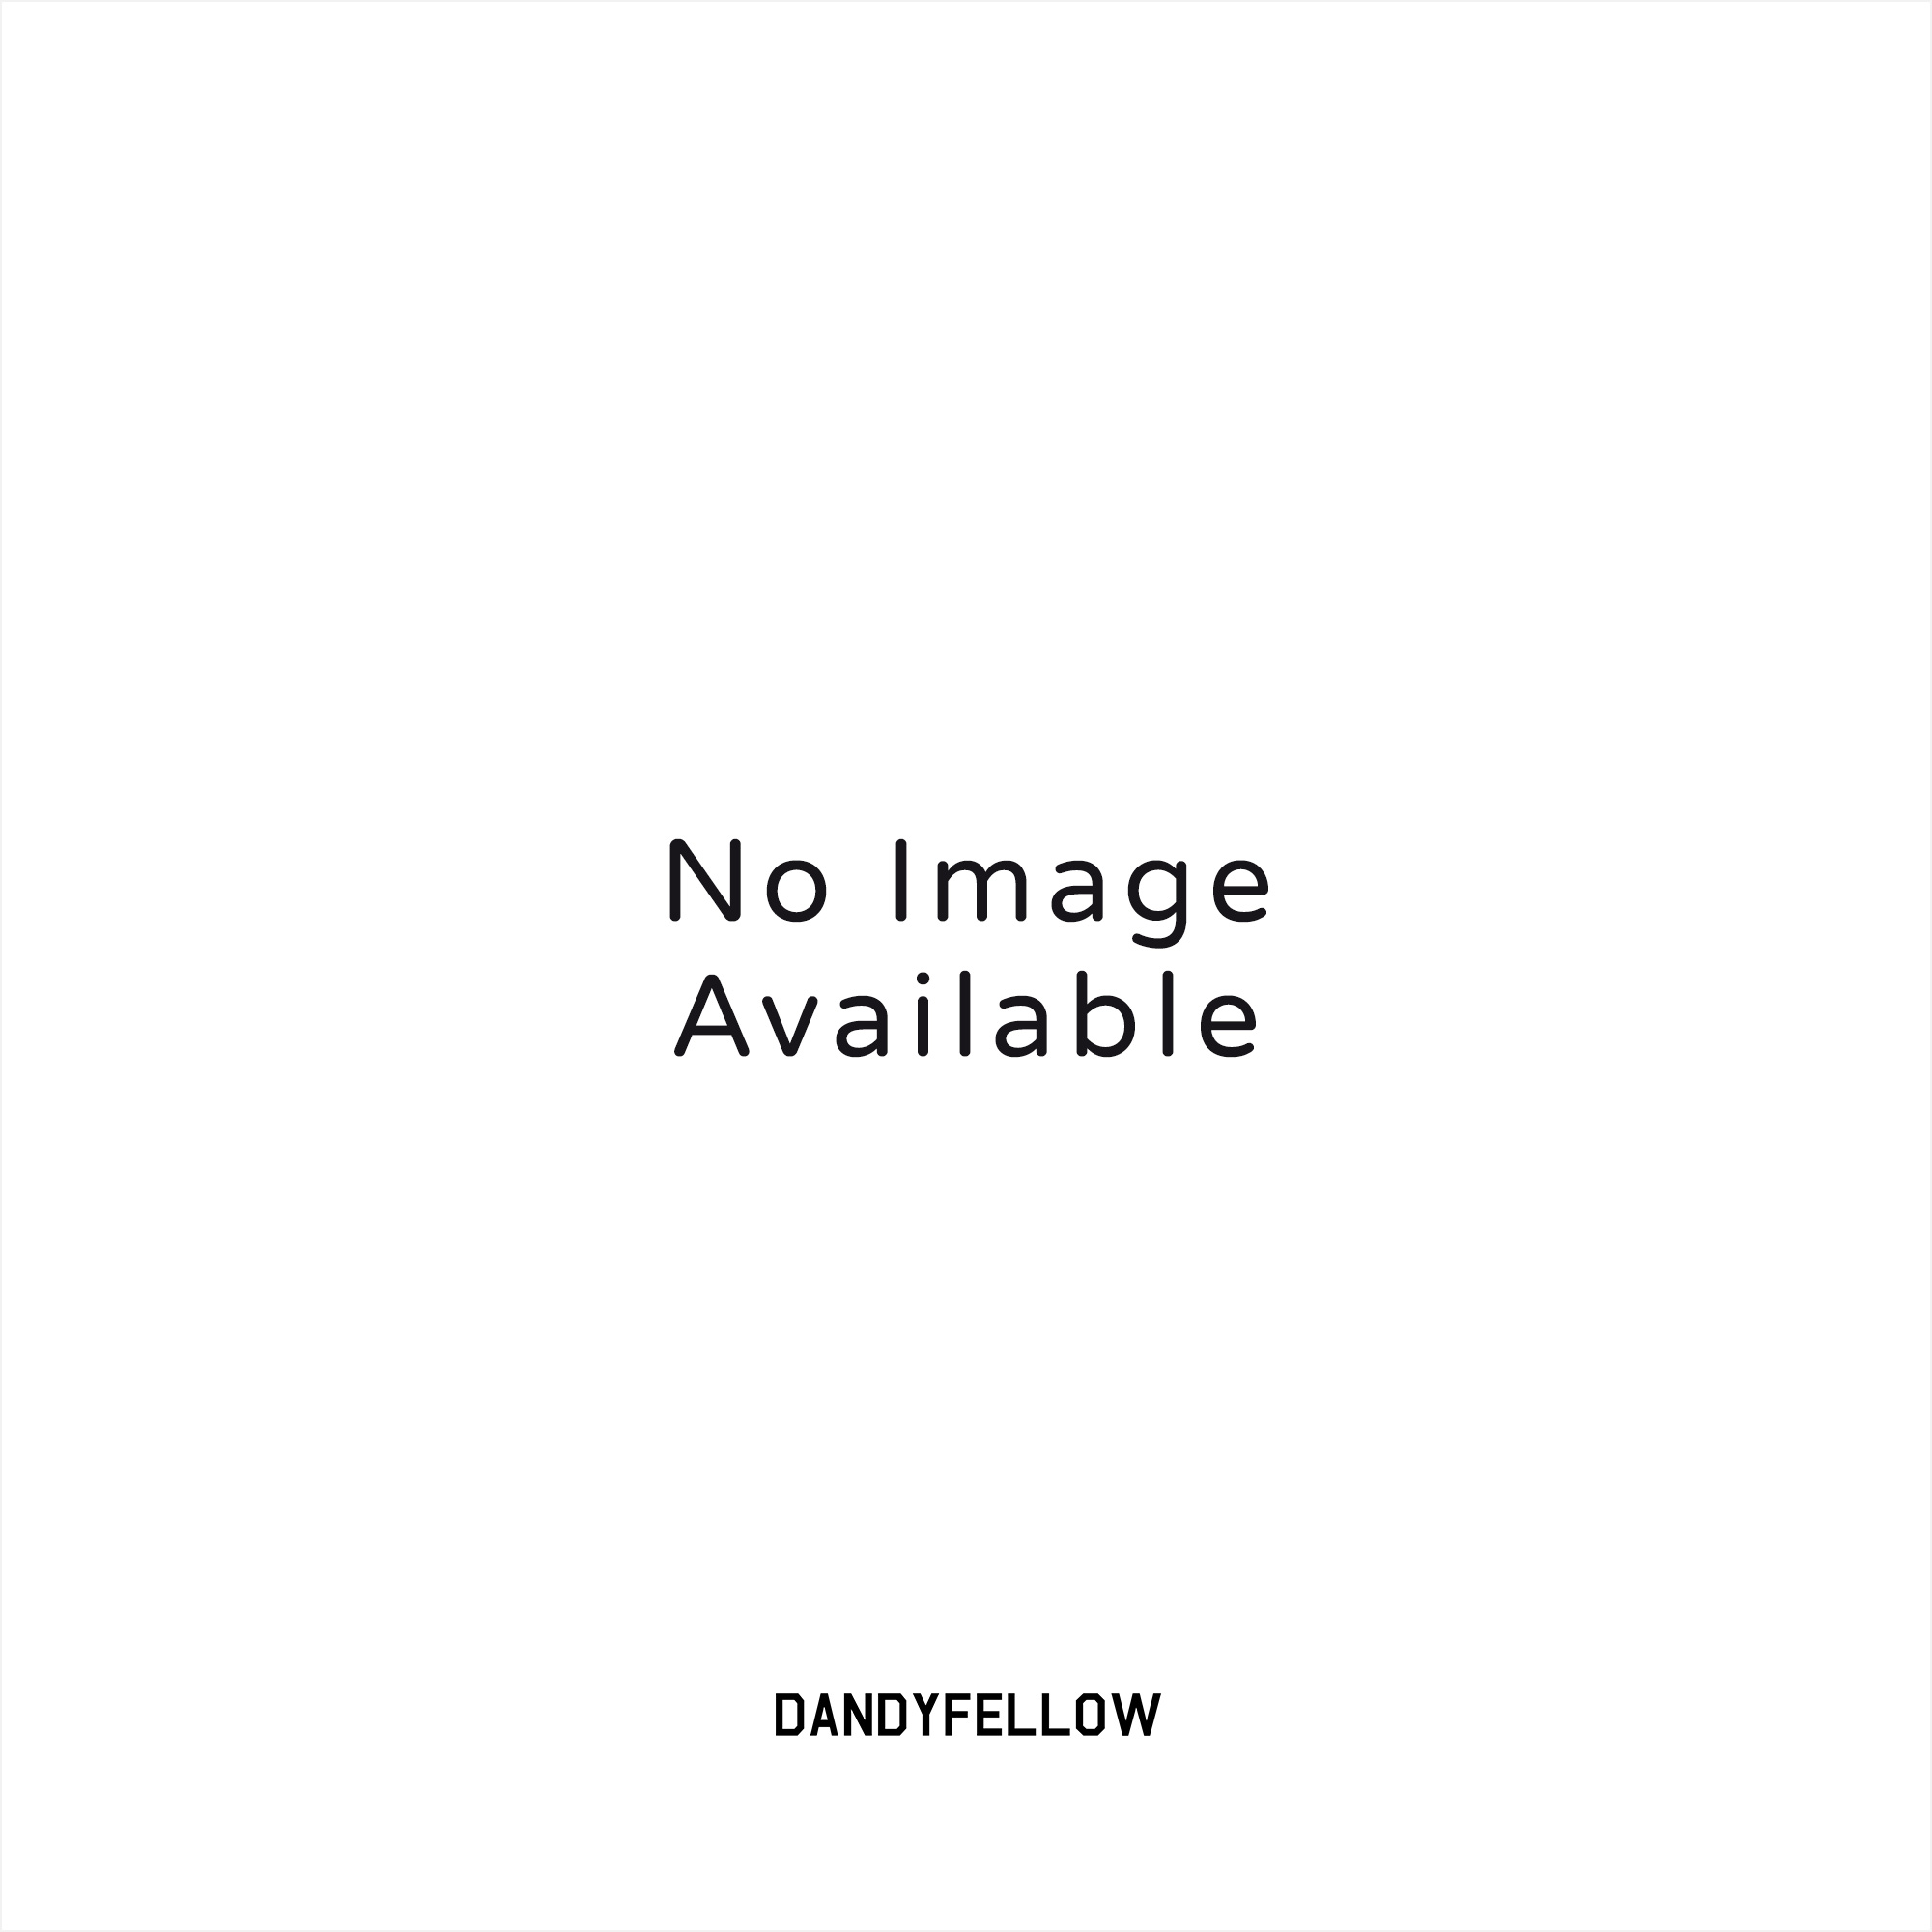 ededfda0b21 Adidas Y-3 Saikou Trainers (White   Black) at Dandy Fellow